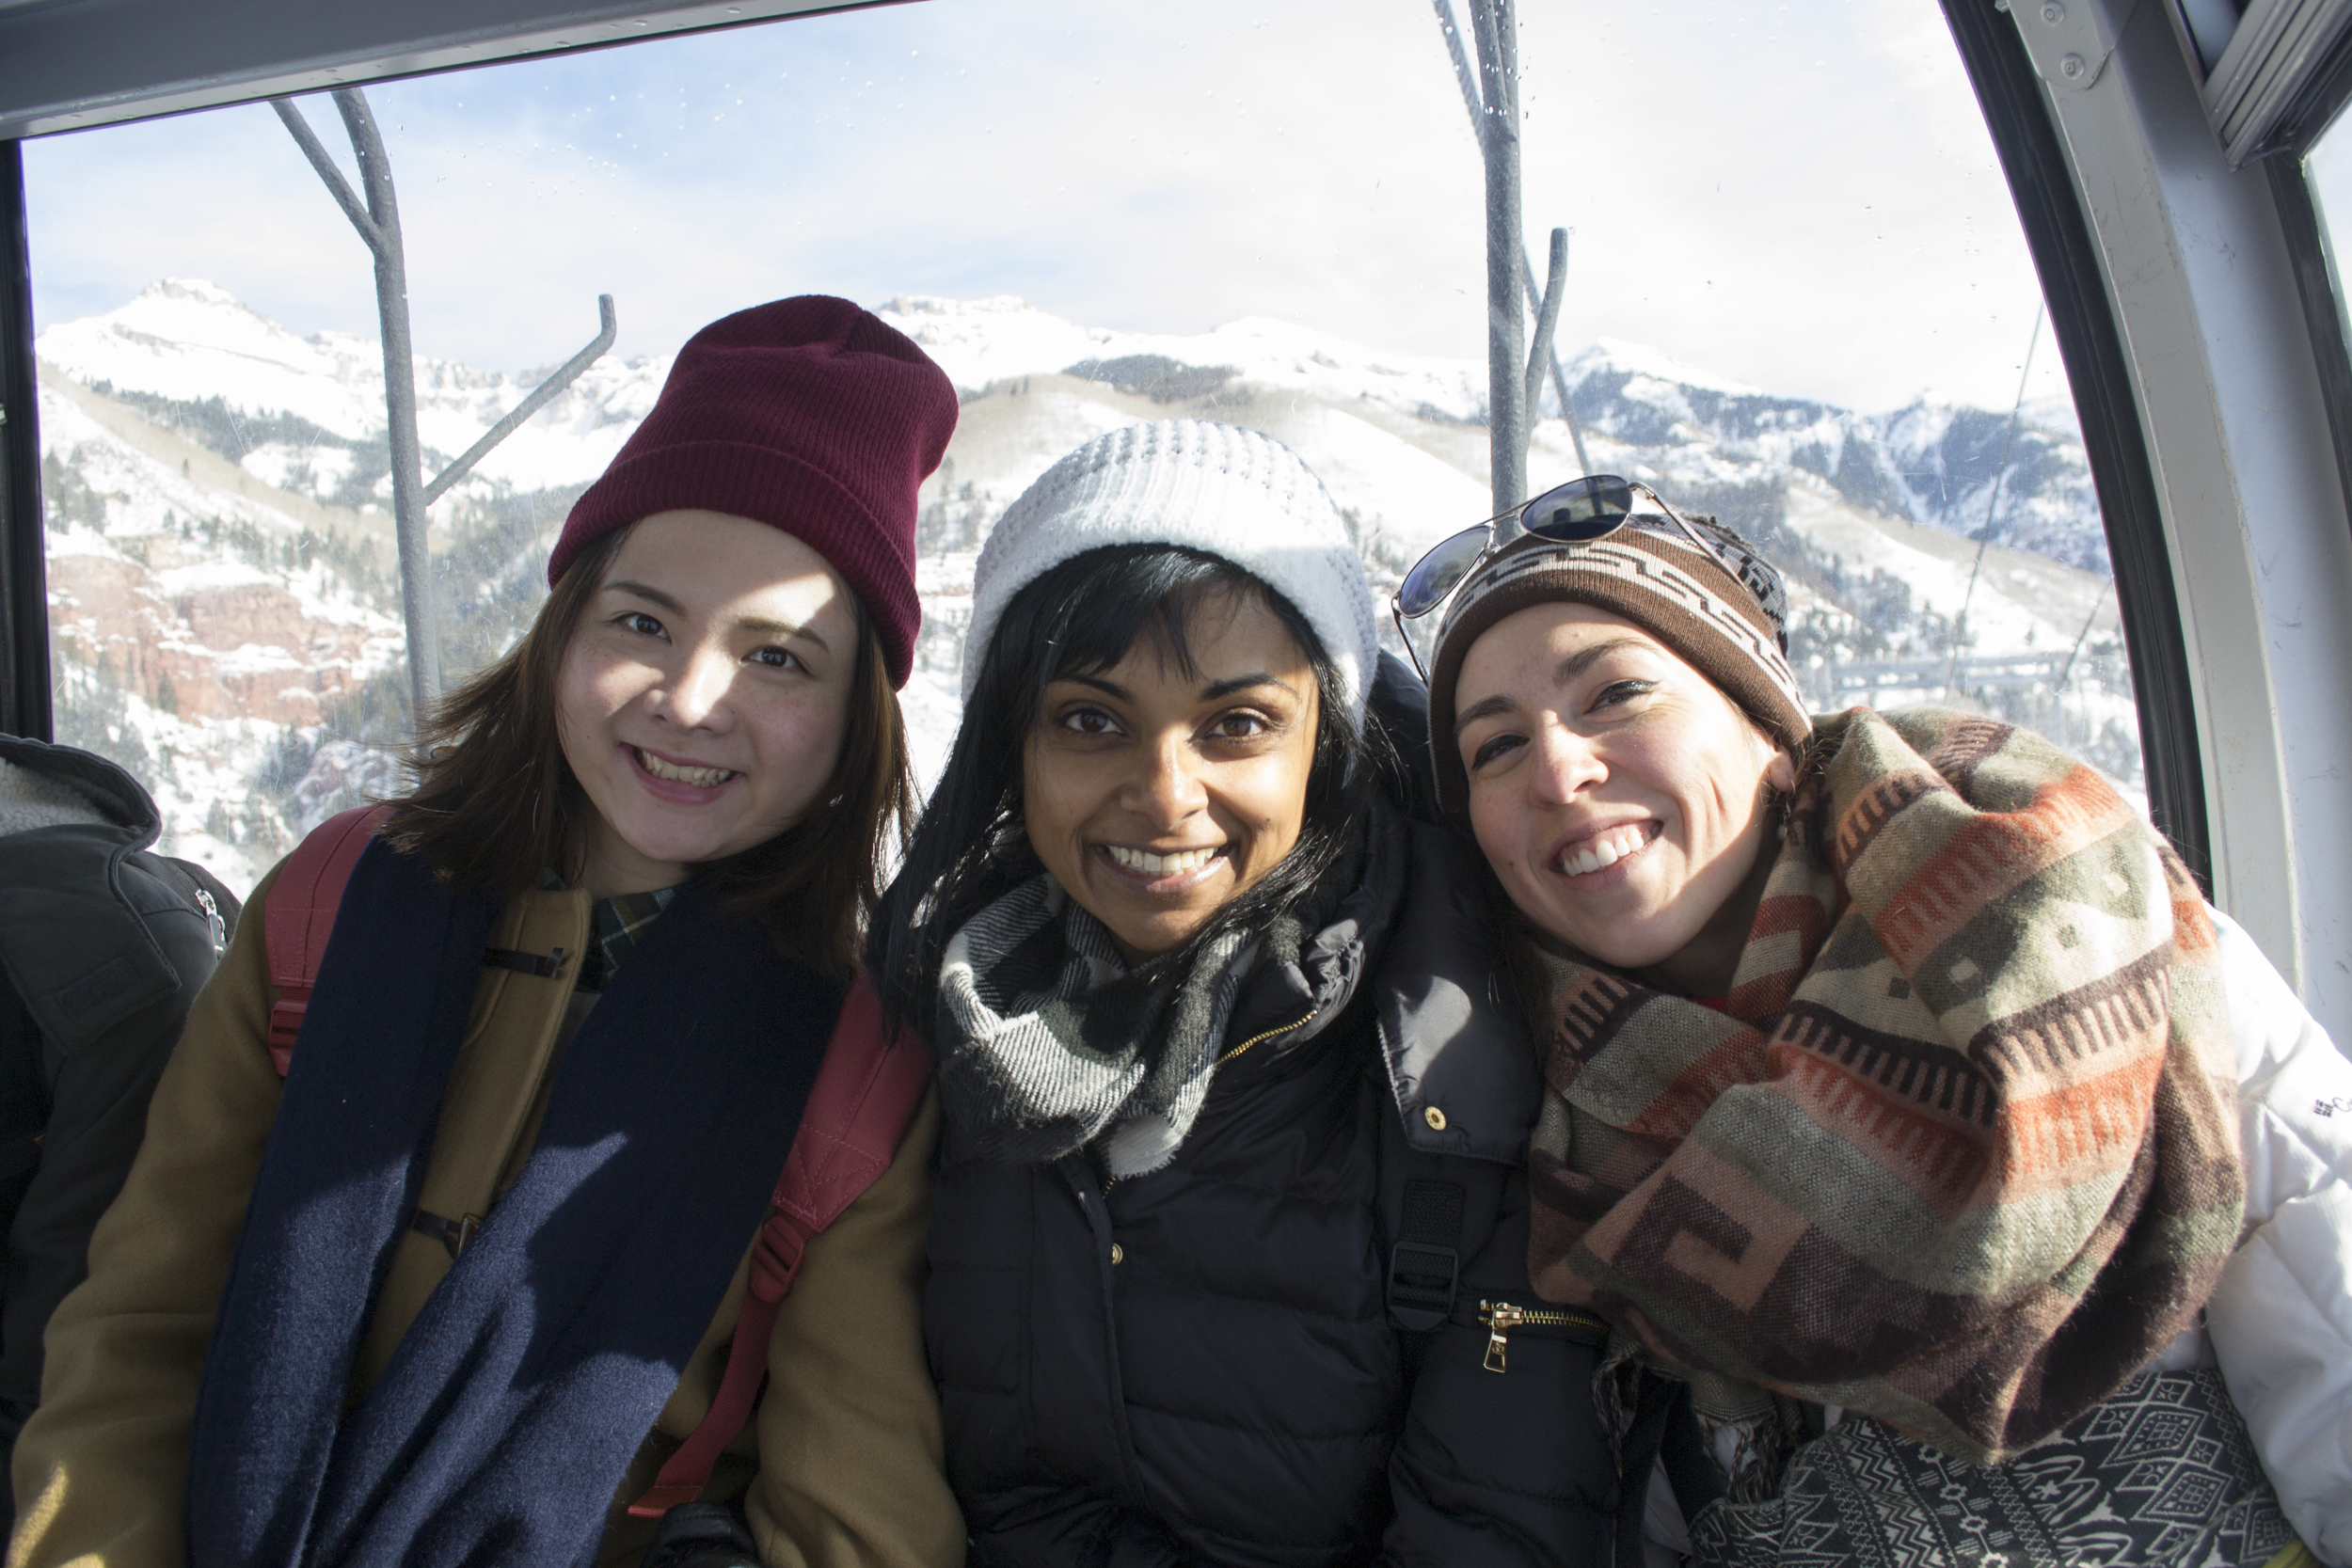 Yinfan, Anuja, and Lindsay ride the gondola from Telluride to Mountain Villiage.